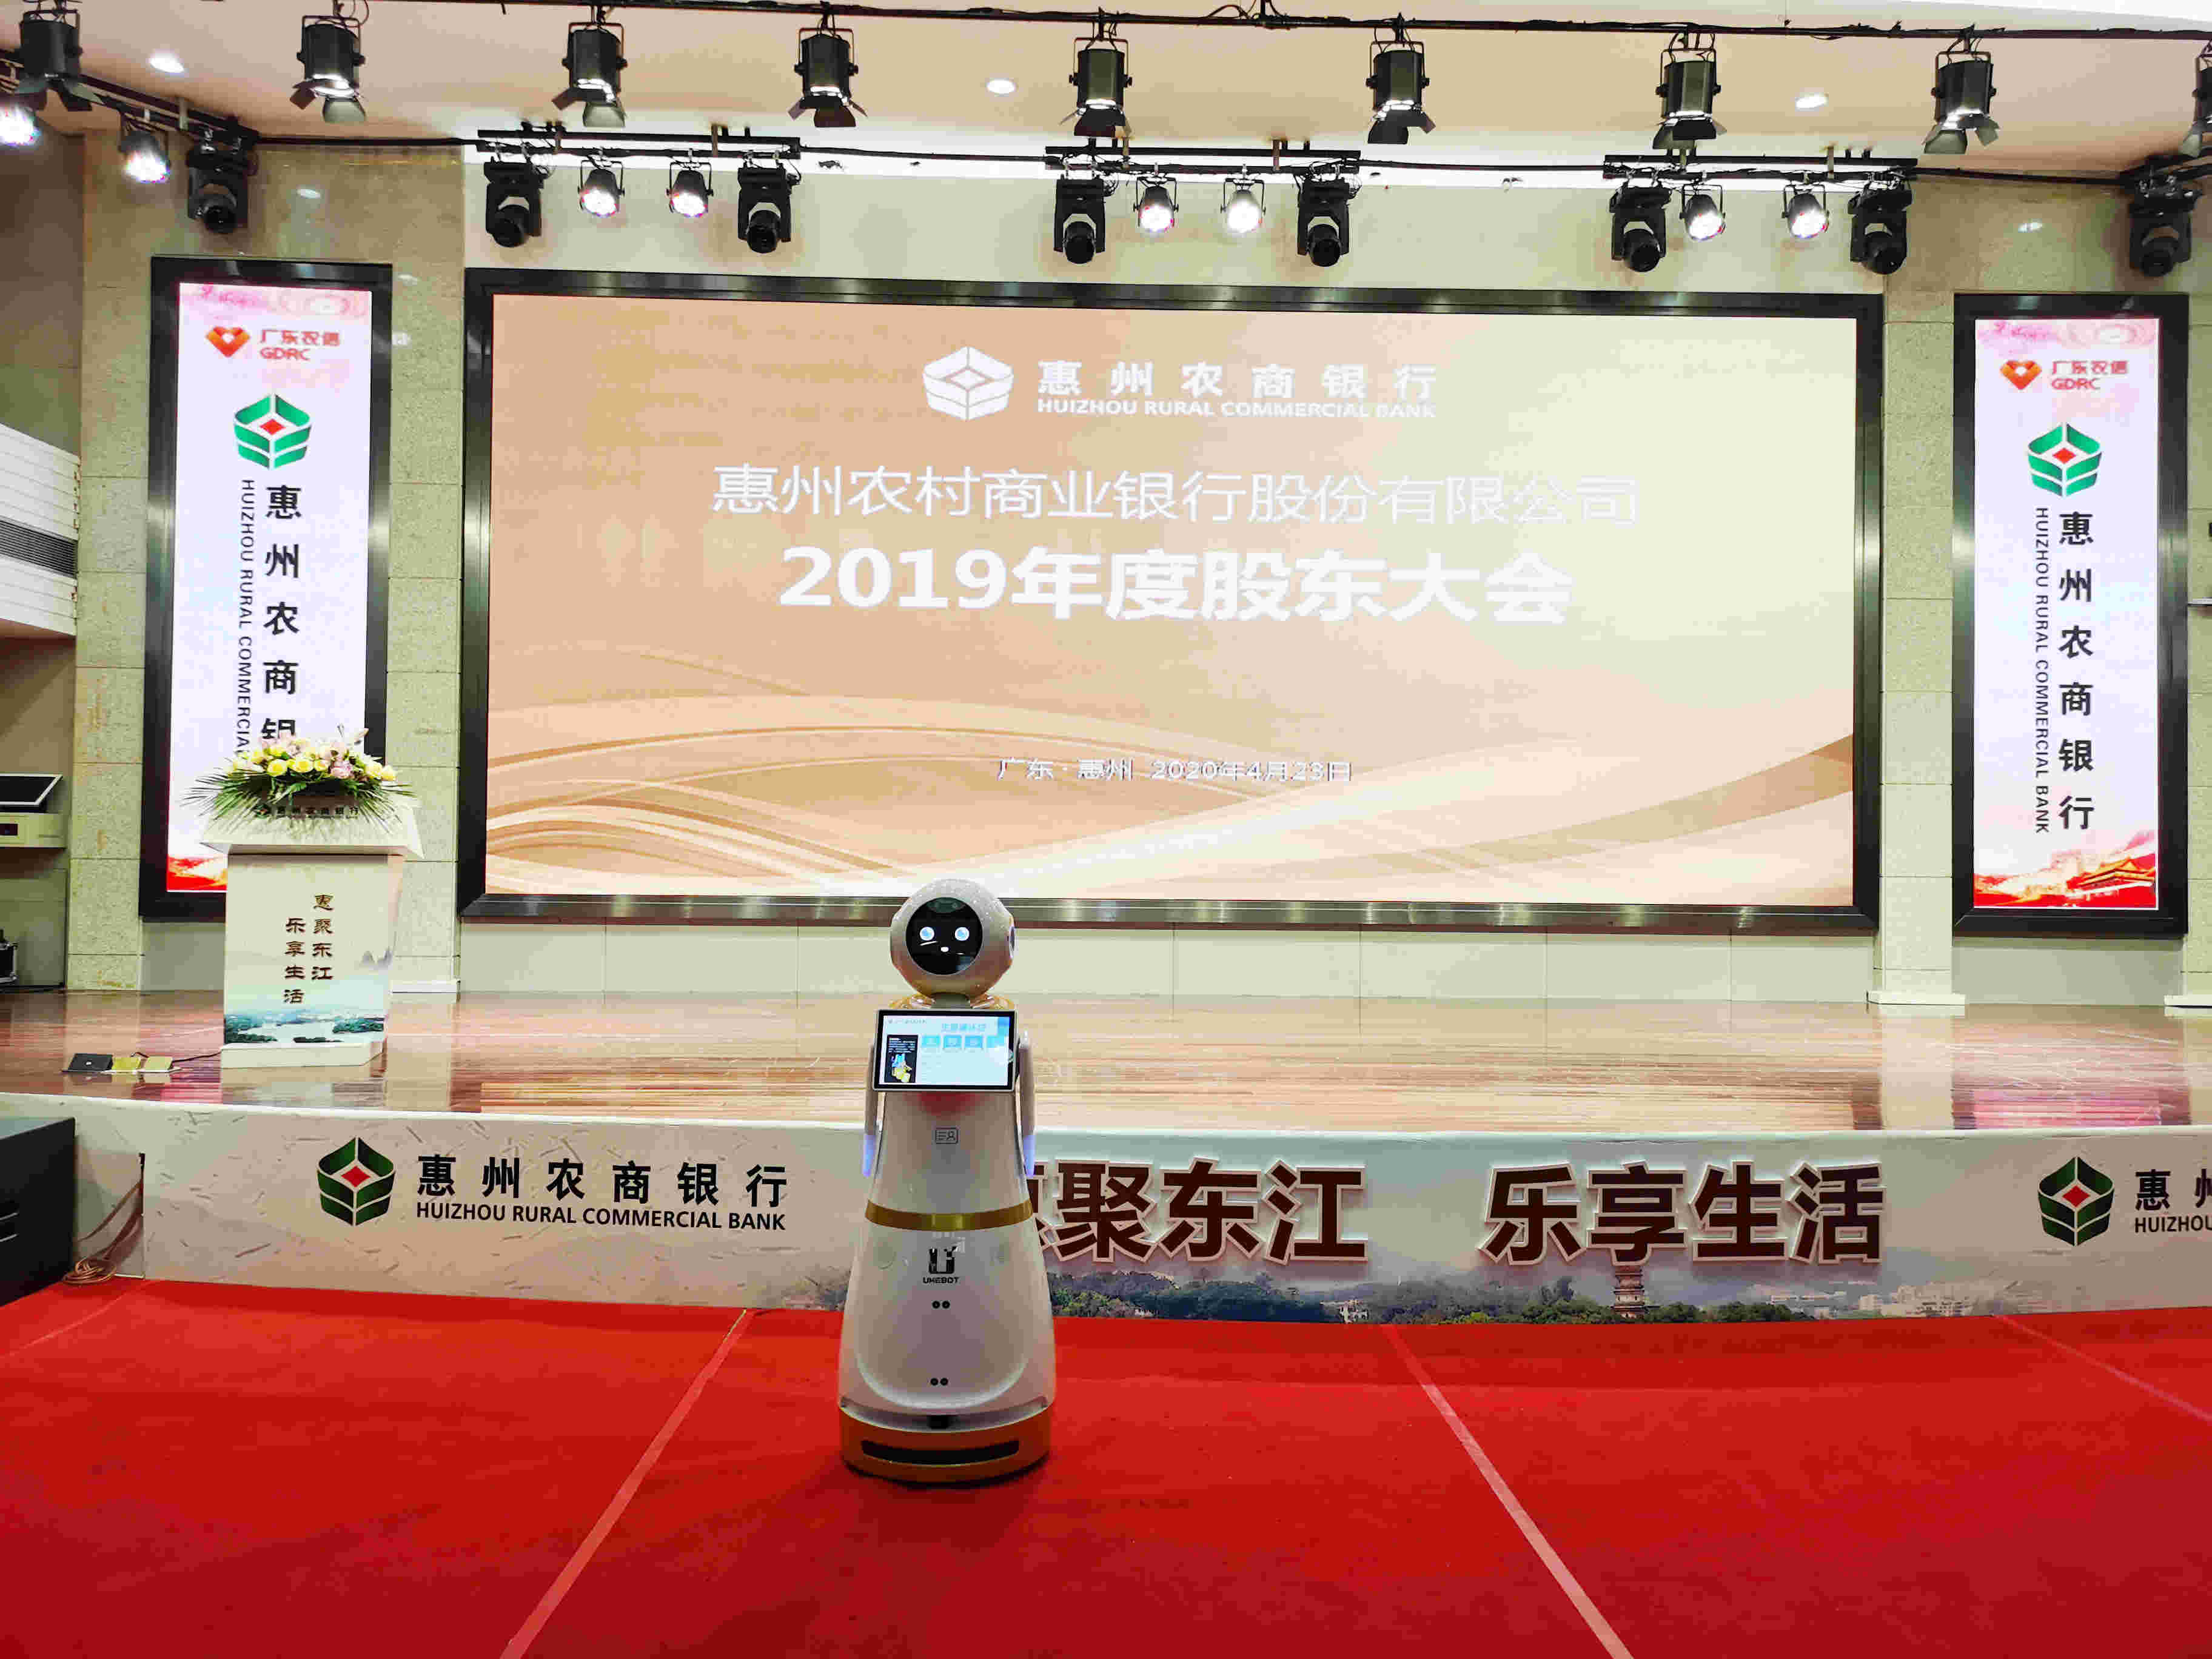 An AI robot from Huizhou Rural Commercial Bank! Be proficient in everything!